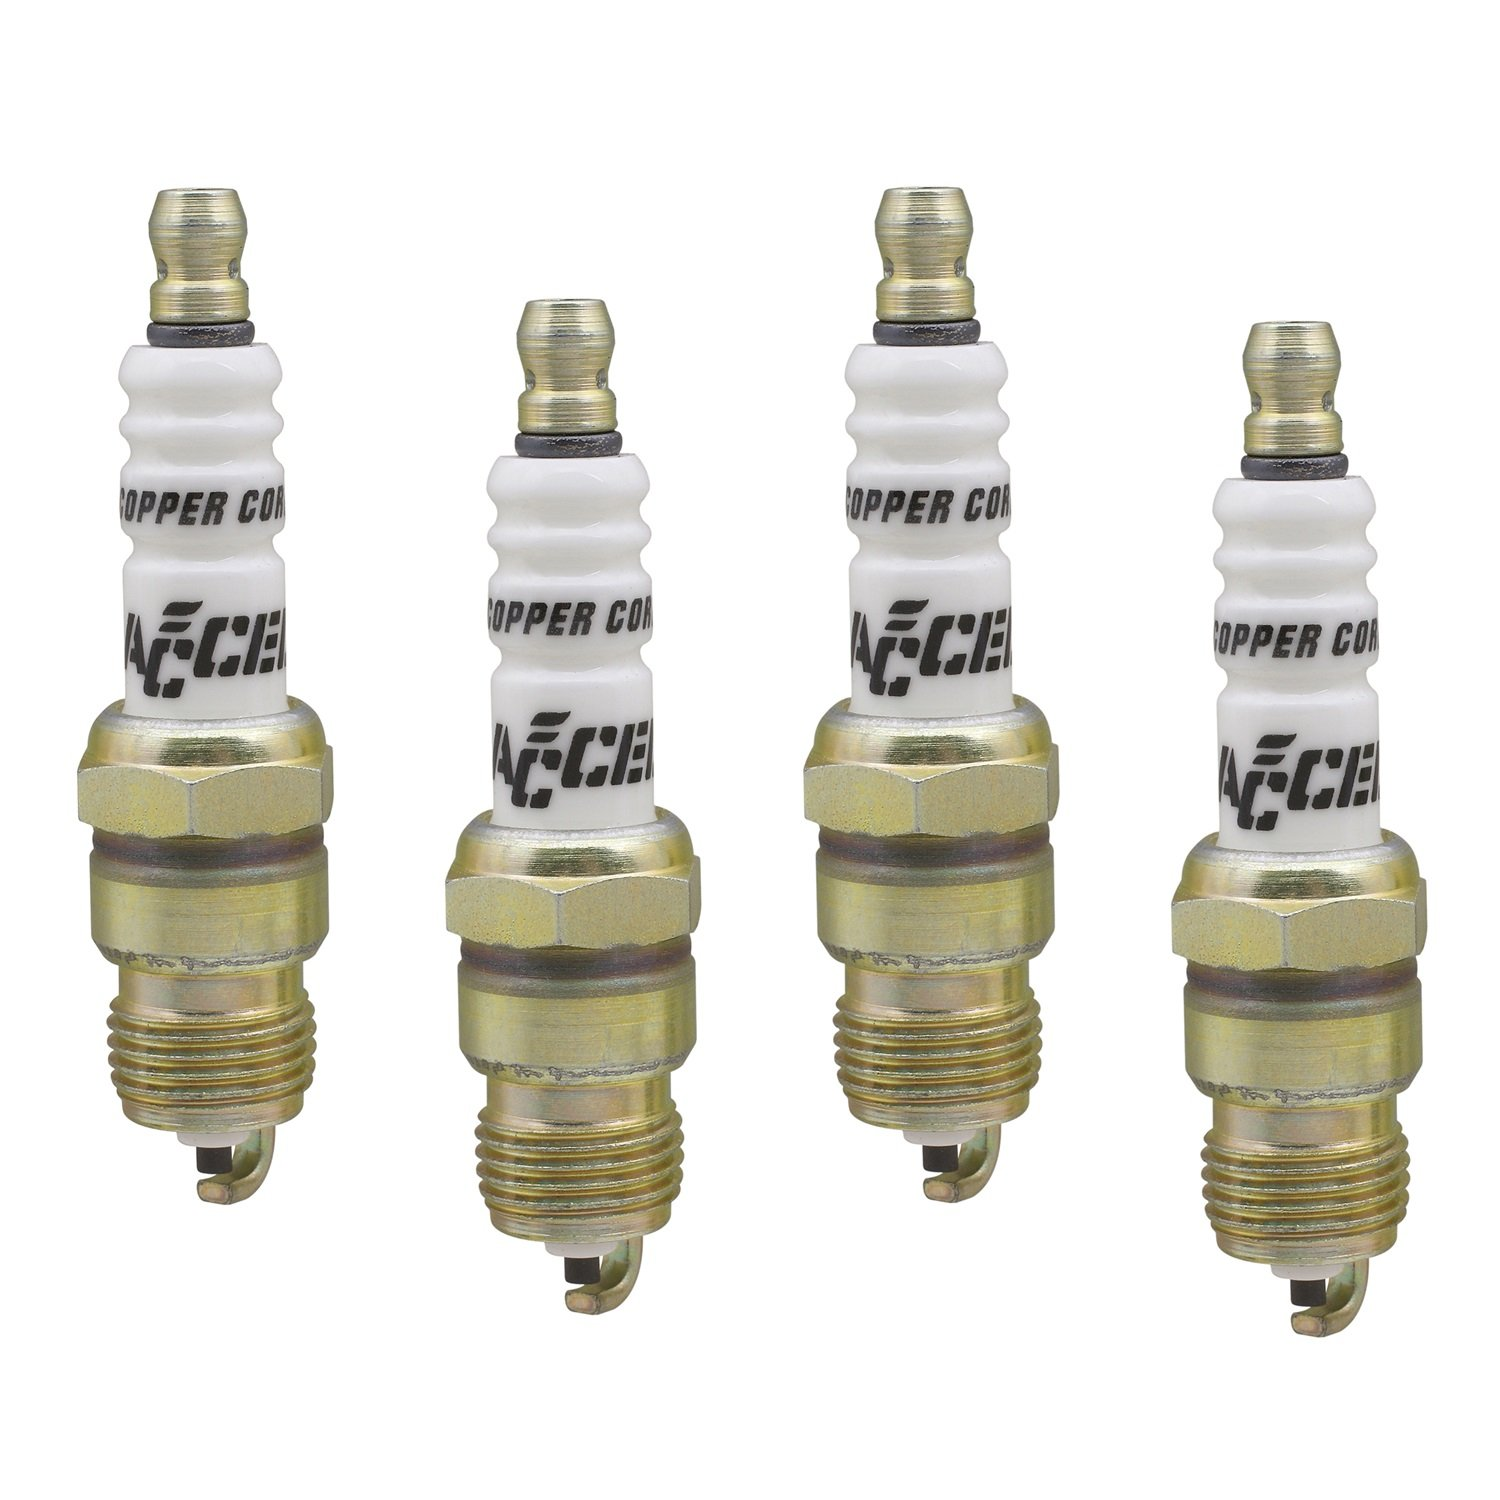 ACCEL 0576S-4 Shorty Copper Core Spark Plug, (Pack of 4) by ACCEL